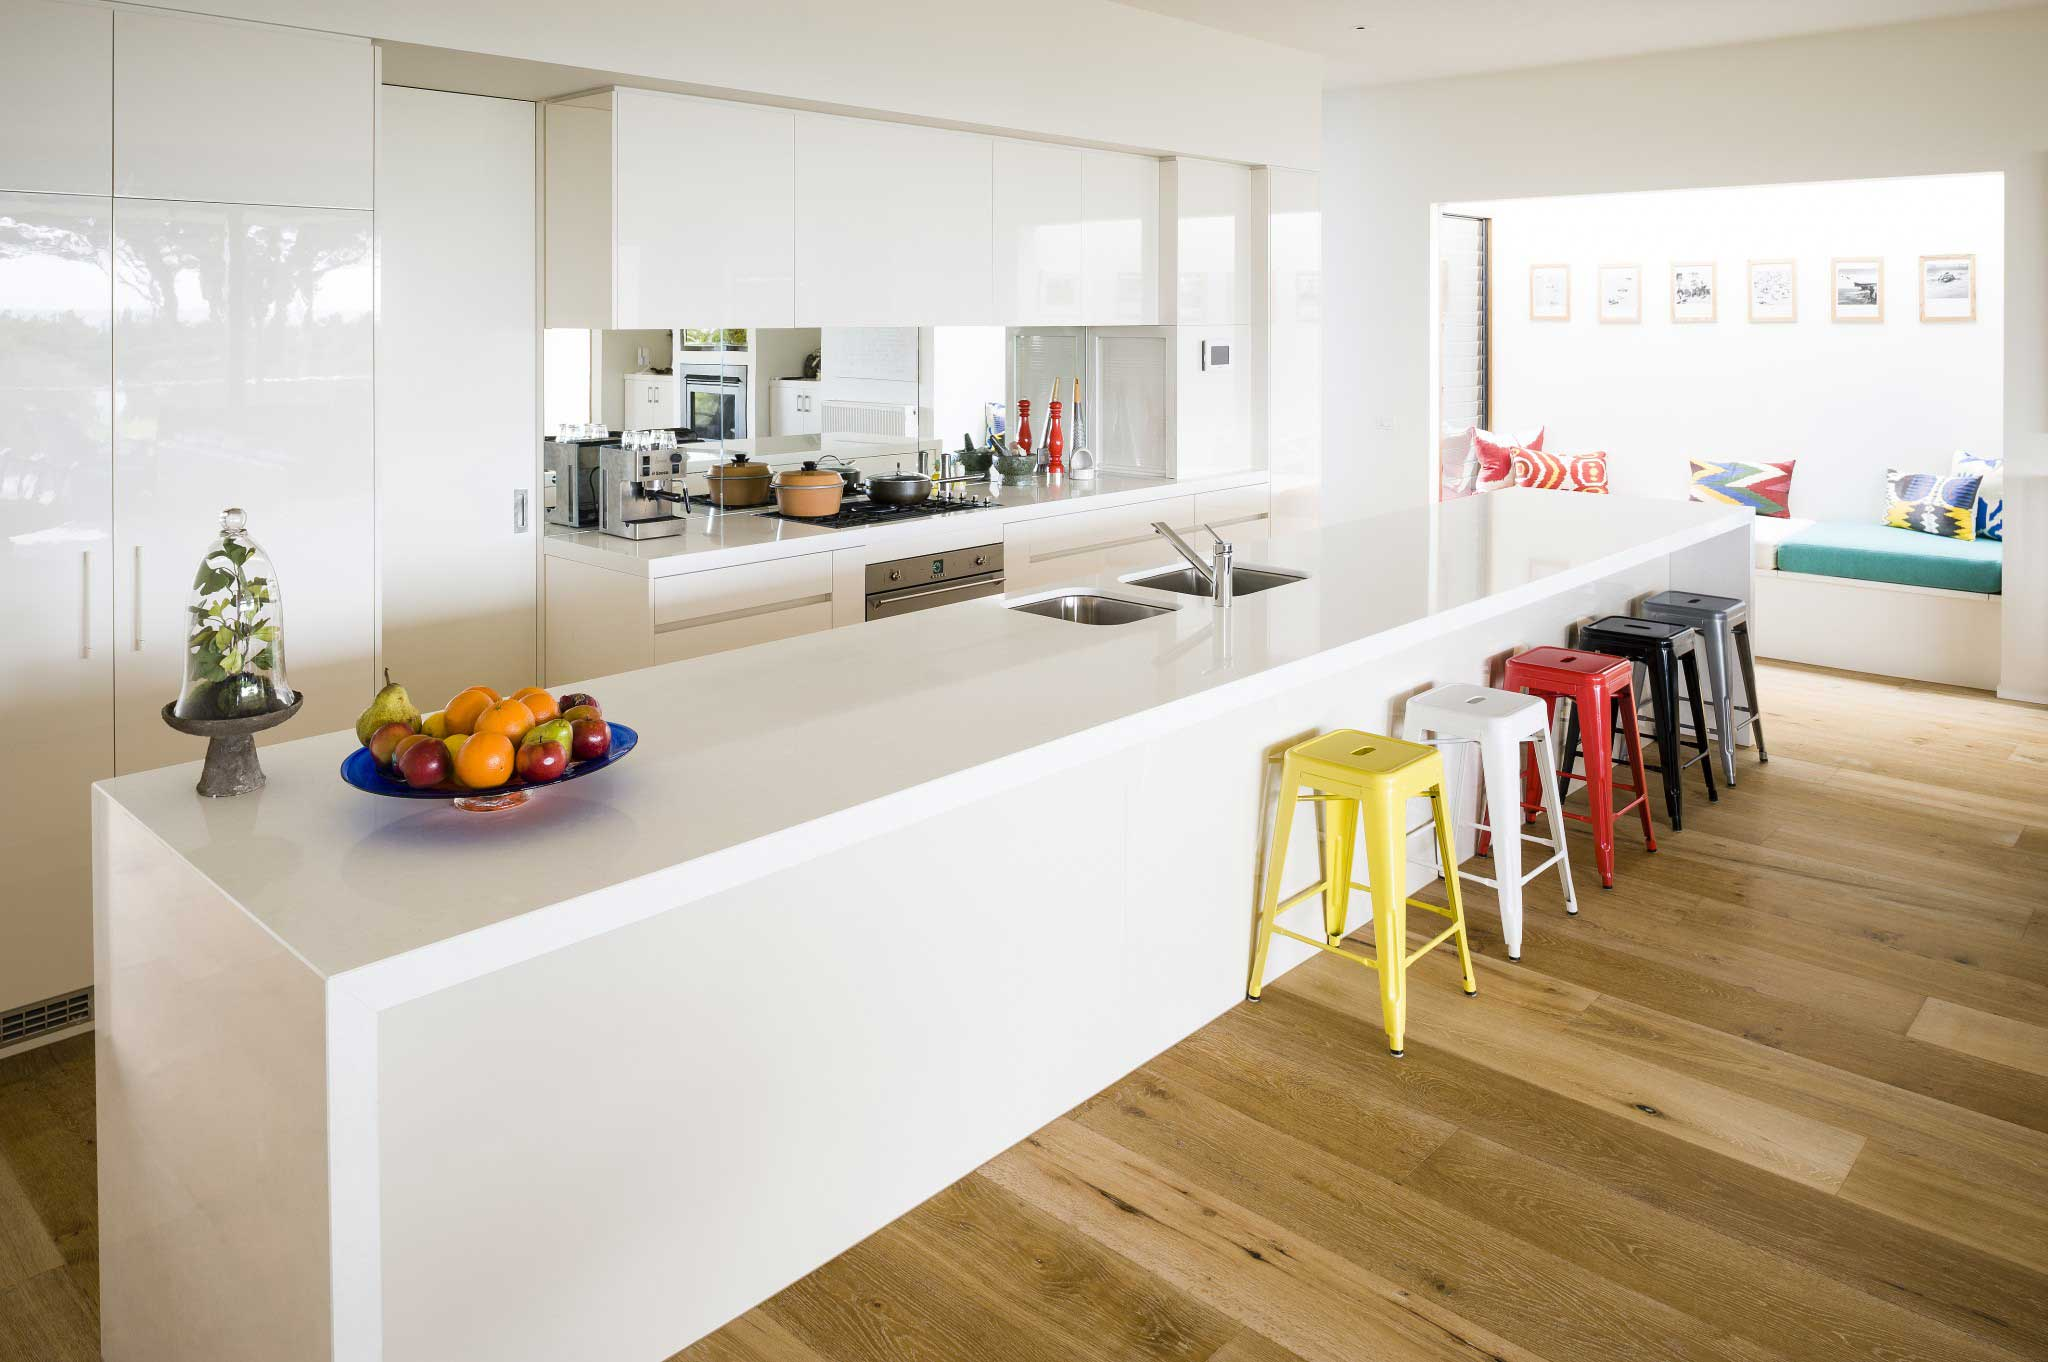 Kitchens Renovations Kitchen Renovations Design Melbourne Rosemount Kitchens